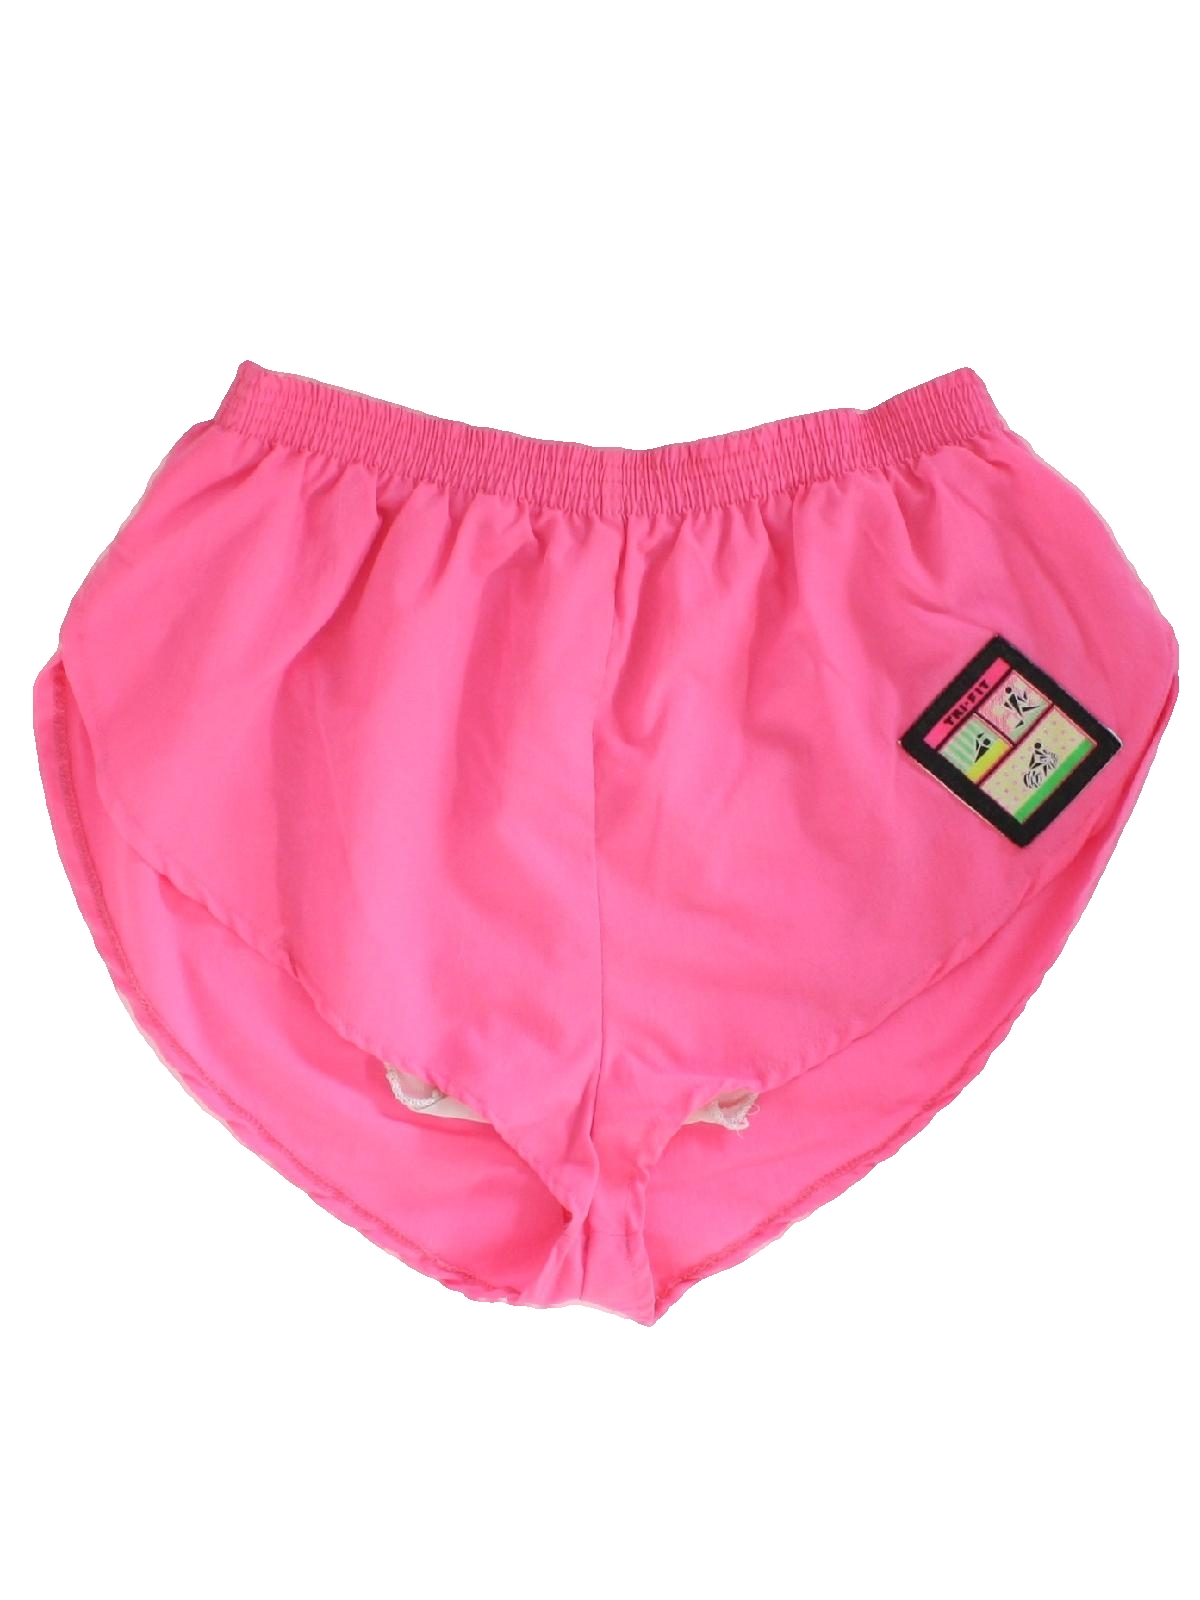 Shop pink running shorts from DICK'S Sporting Goods today. If you find a lower price on pink running shorts somewhere else, we'll match it with our Best Price Guarantee! Check out customer reviews on pink running shorts and save big on a variety of products. Plus, ScoreCard members earn points on every purchase.